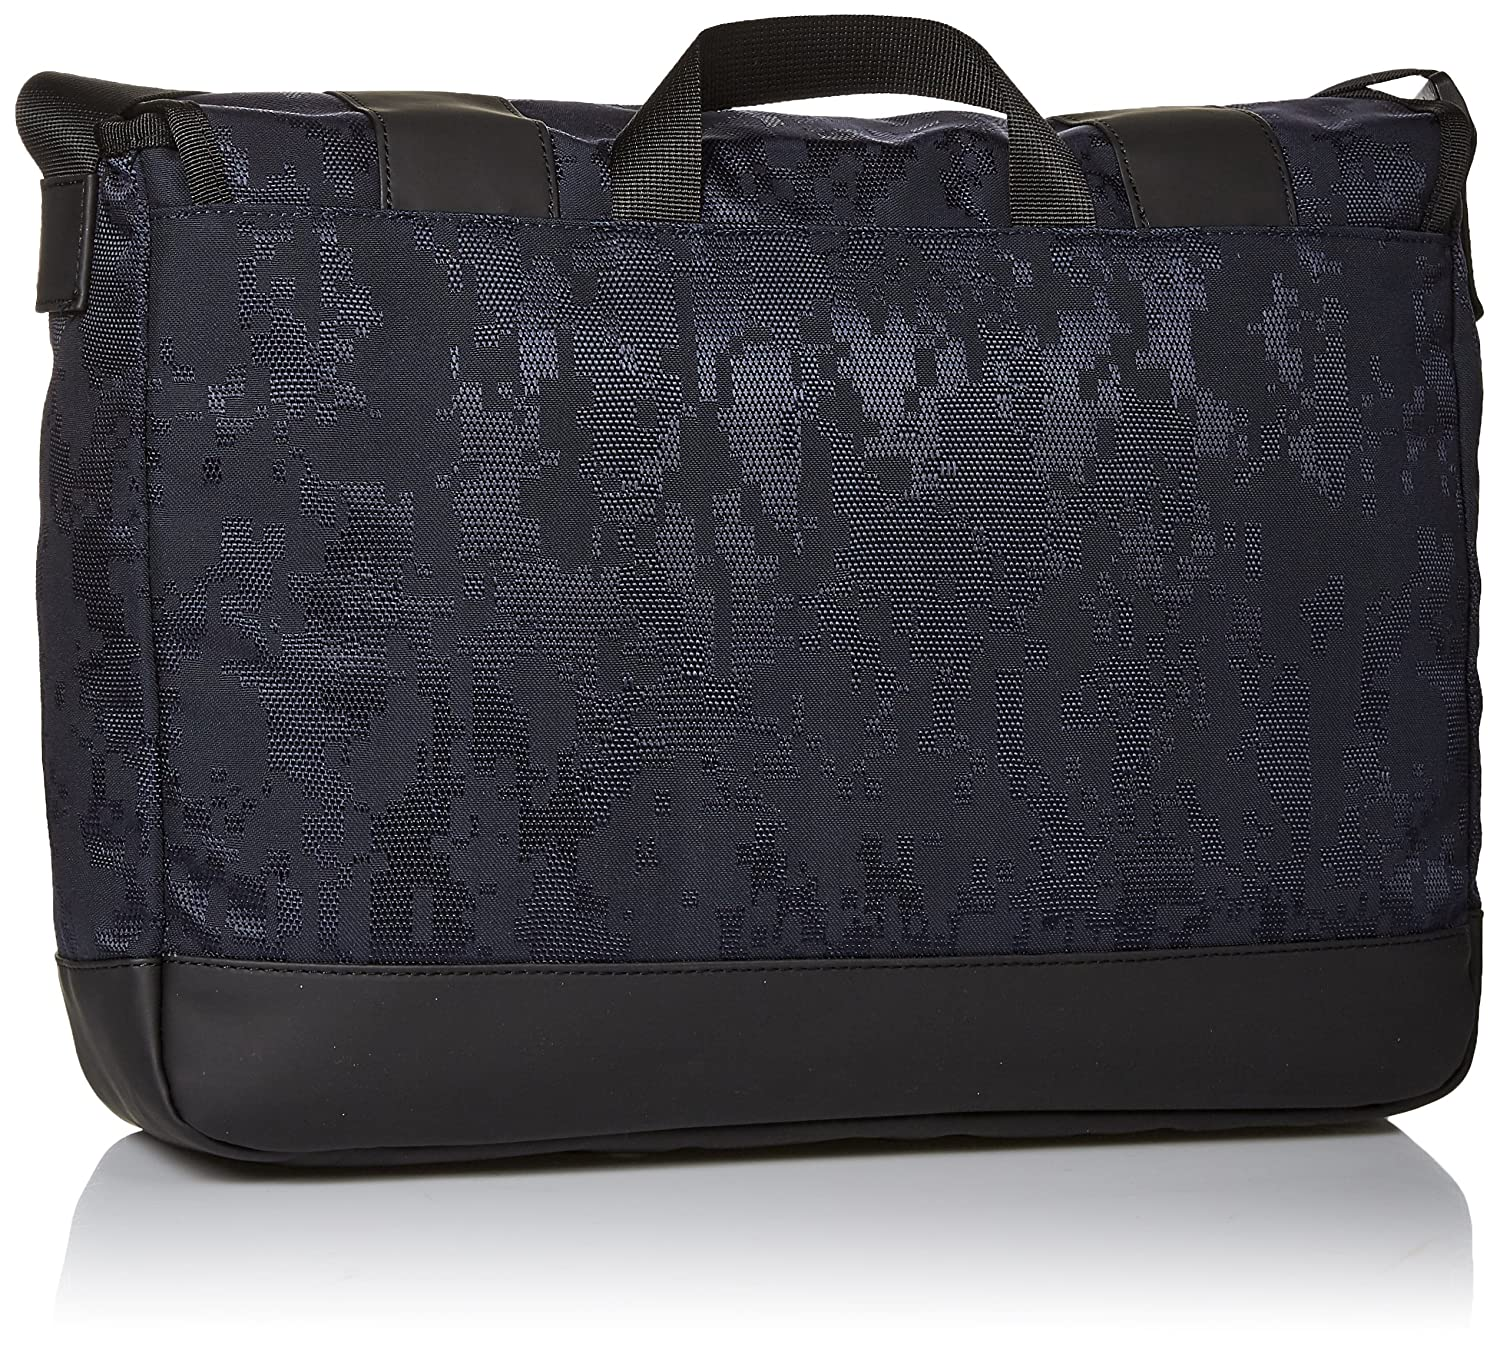 38bd499e2904 Amazon.com  Armani Jeans Men s Jacquard Fabric and Rubberized Messenger  Bag  Clothing